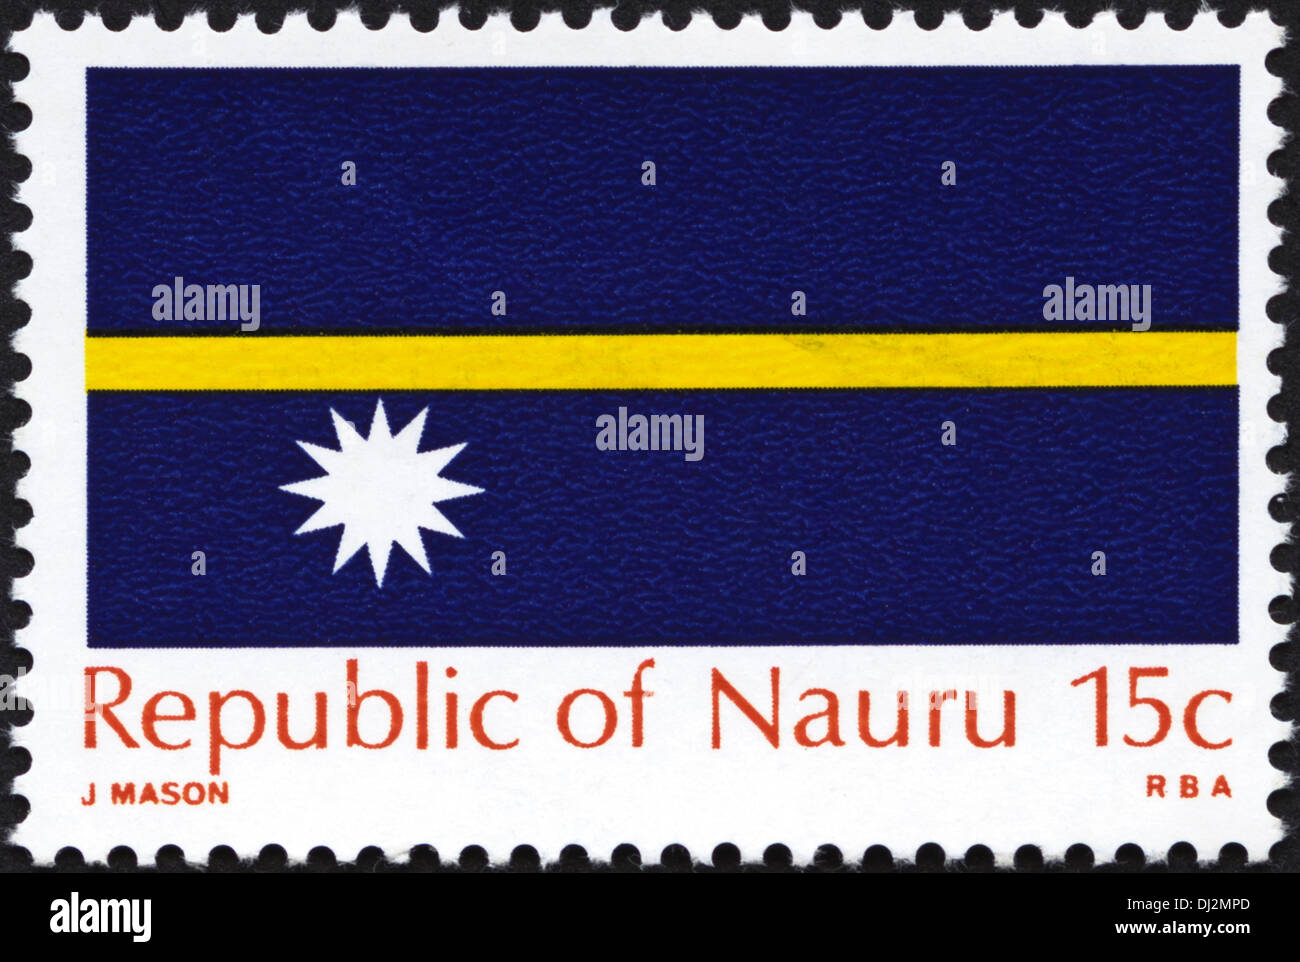 postage stamp Republic of Nauru 15c featuring national flag dated 1969 - Stock Image